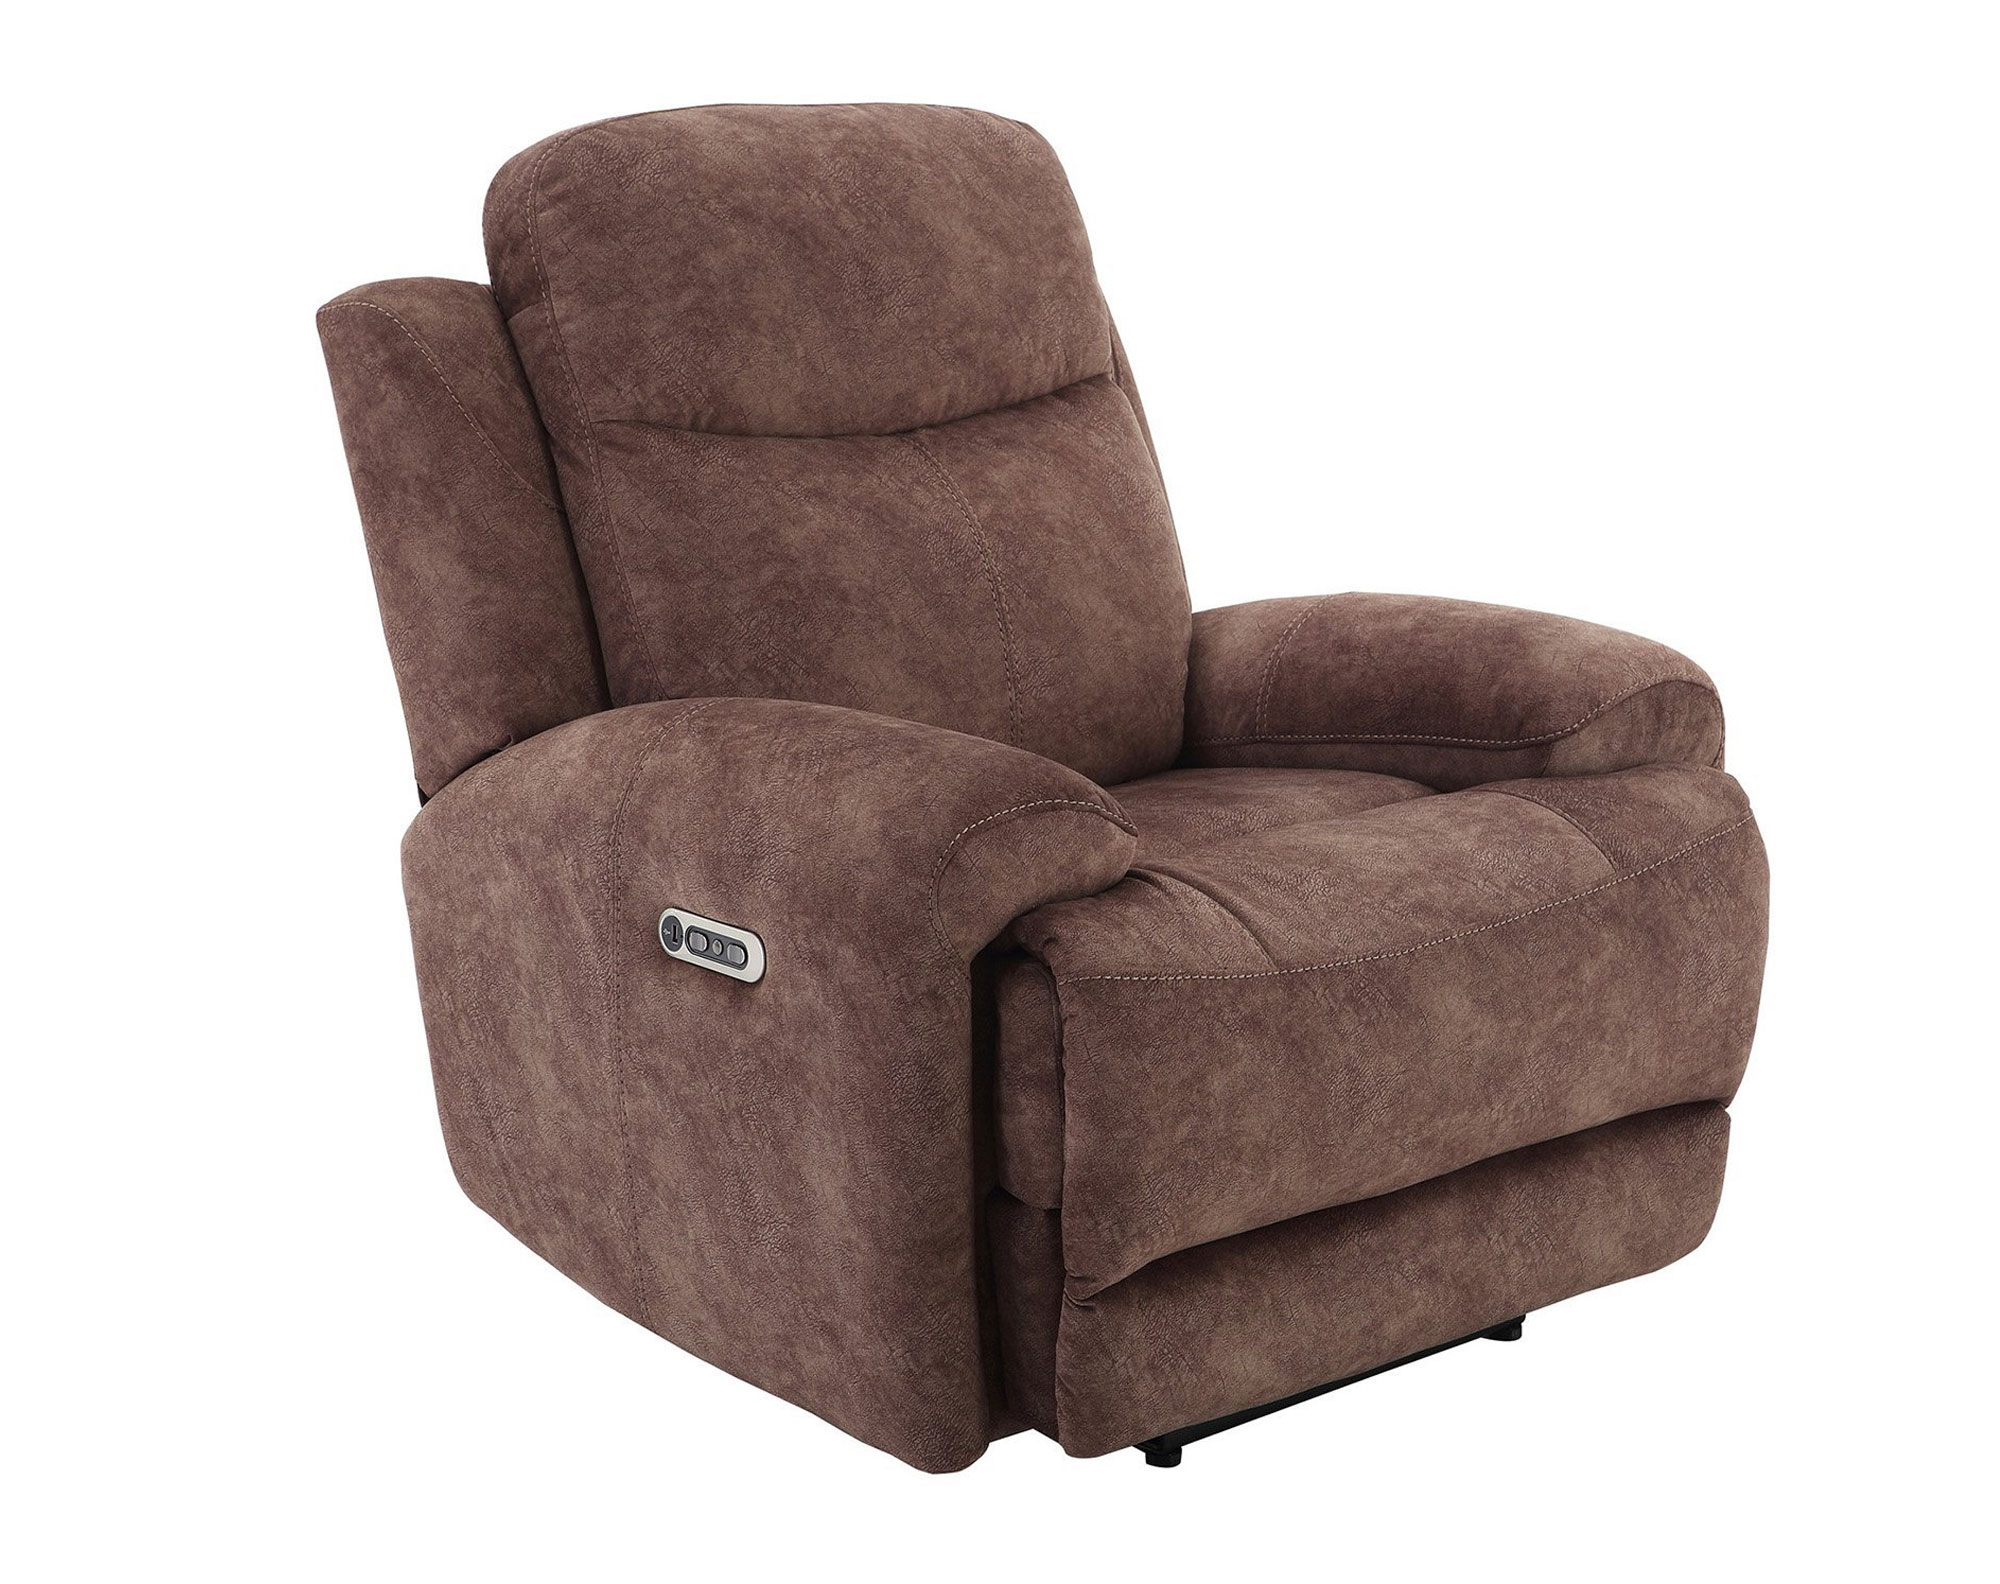 Pleasant Bowie Range Power Recliner With Power Headrest Sofas And Caraccident5 Cool Chair Designs And Ideas Caraccident5Info